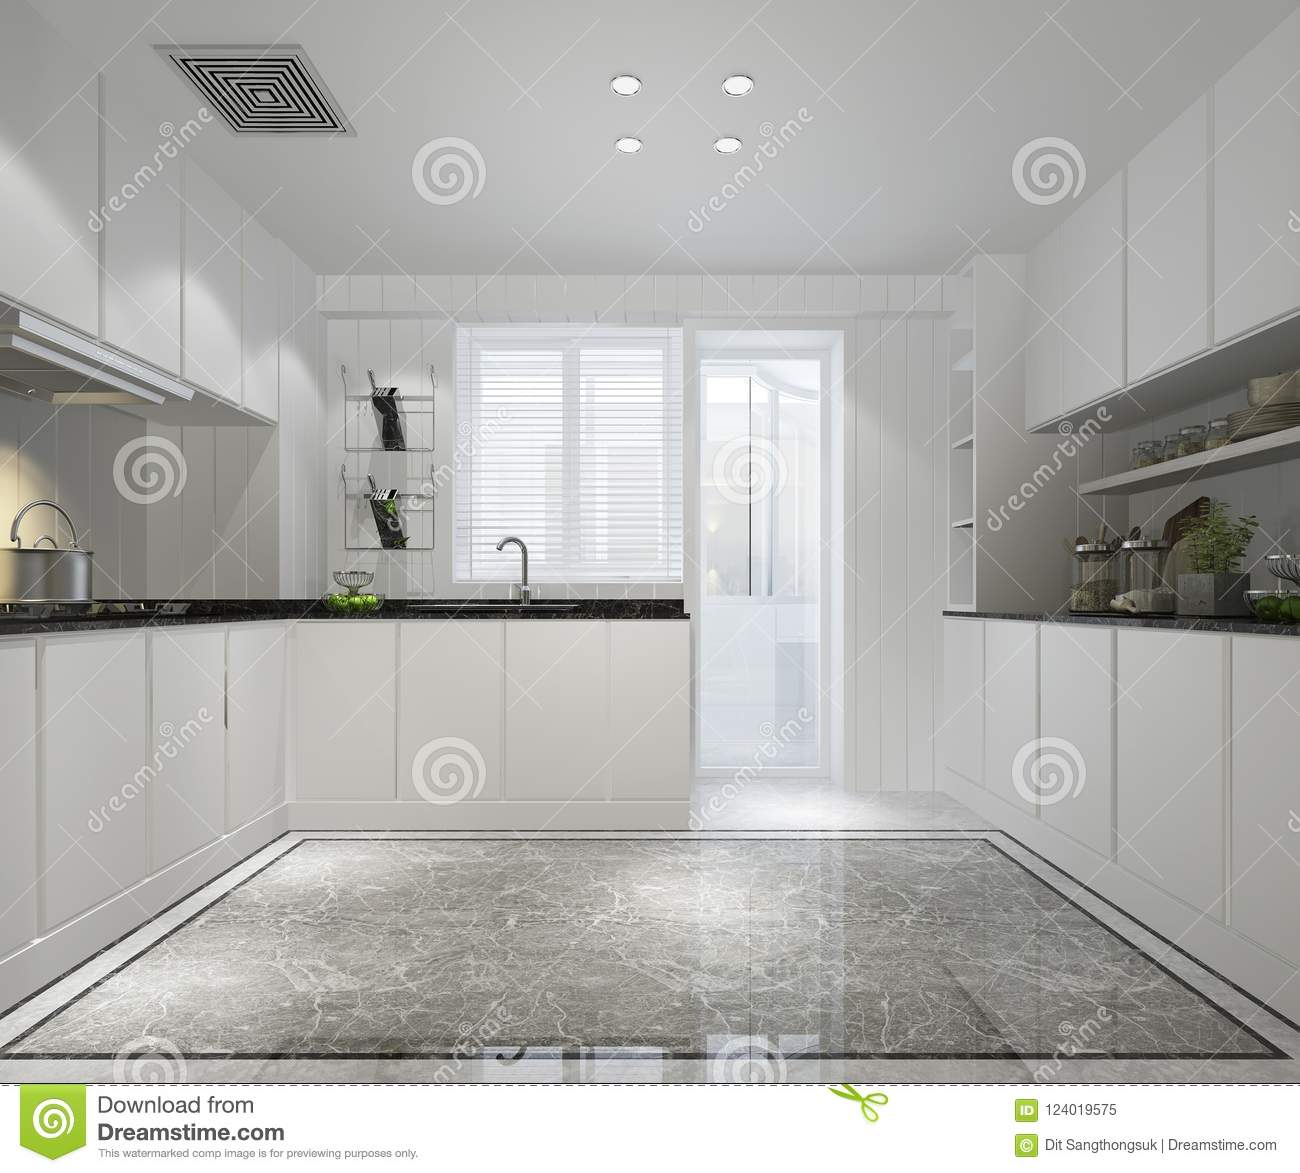 Traditional White Kitchen Design 3d Rendering: 3d Rendering White Minimal Kitchen With Modern Decor Style